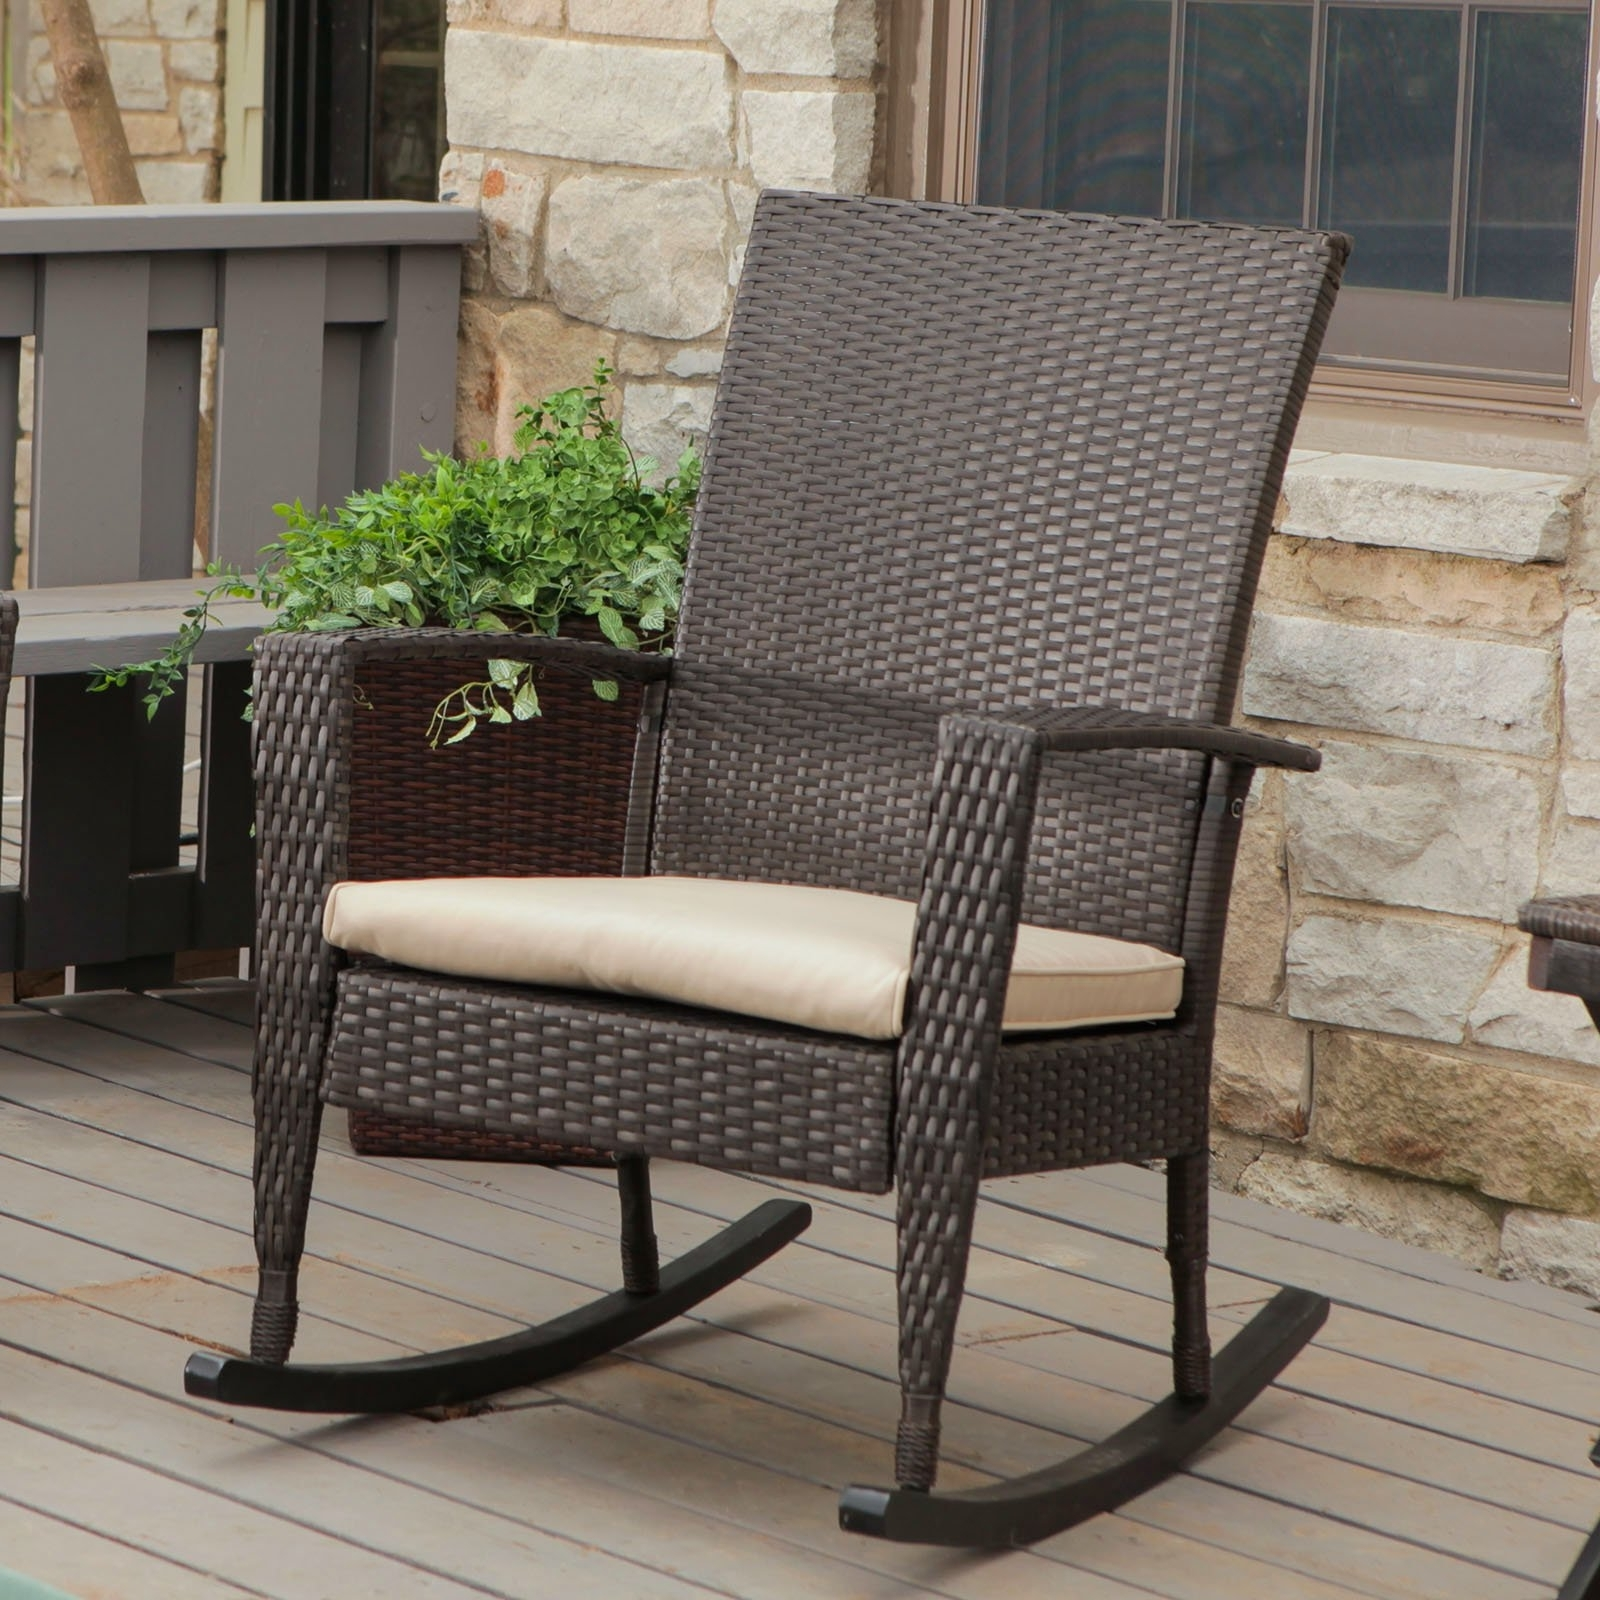 Outdoor Plastic Wicker Rocking Chairs Sale Black Chair Set White With Regard To Preferred Plastic Patio Rocking Chairs (View 5 of 20)